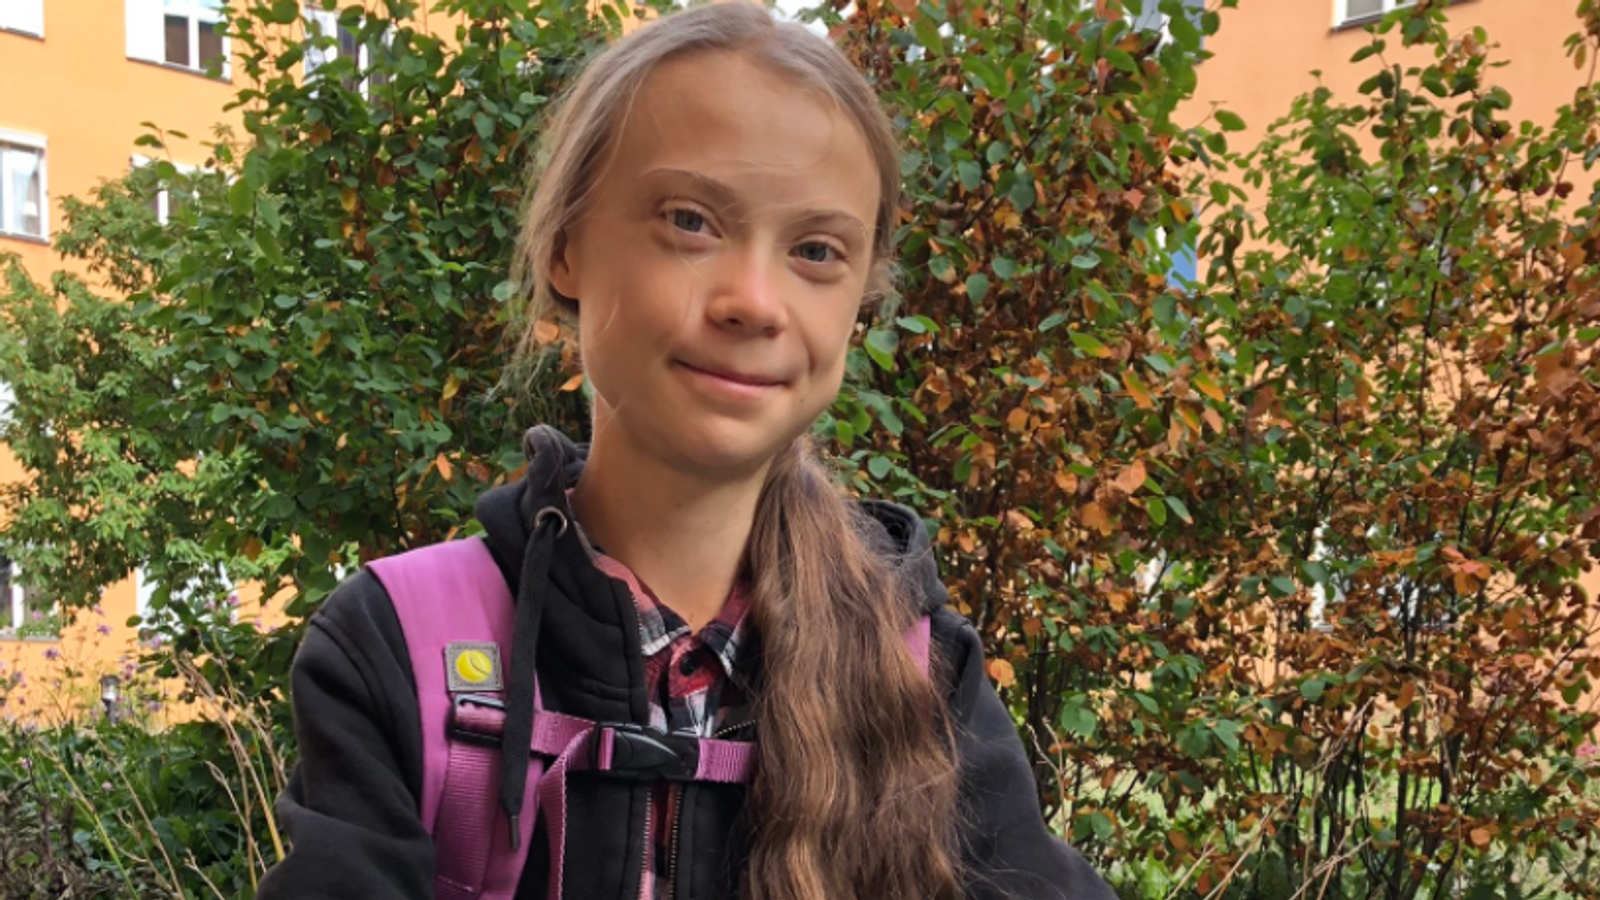 Greta Thunberg's hole 12 months is about – 17-yr-outdated goes again to university right after paying 12 months out of class | Entire world Information